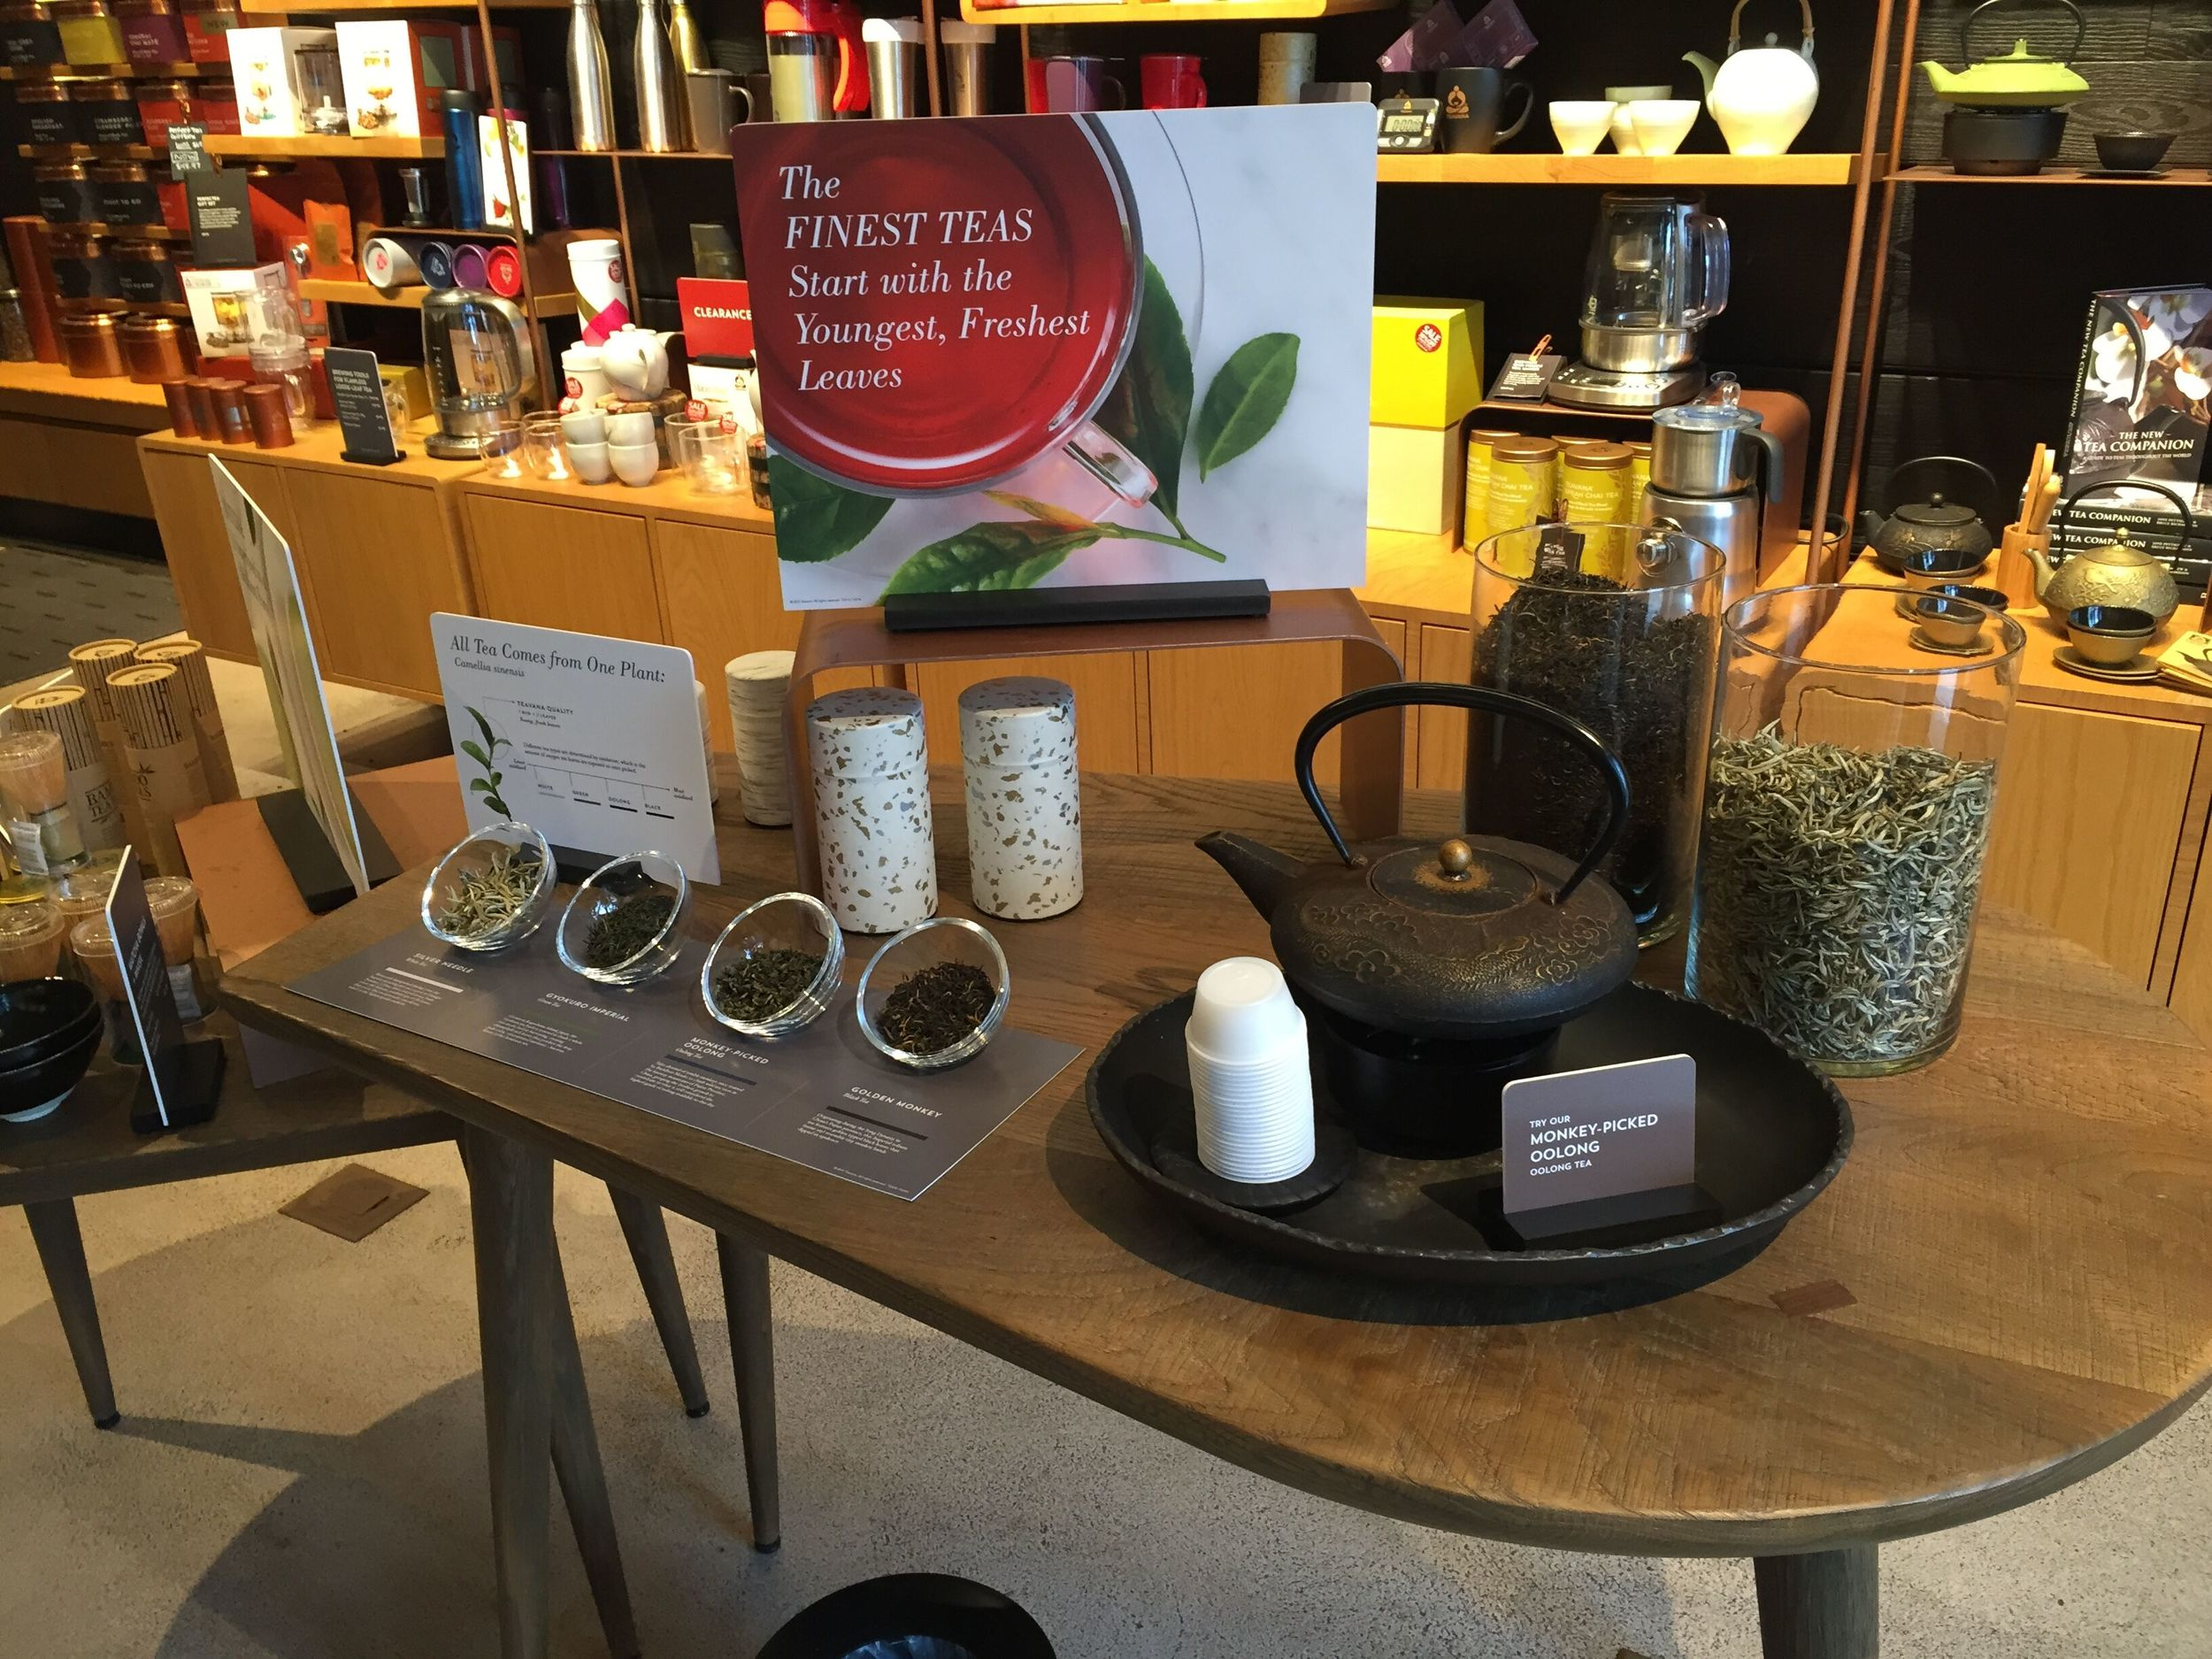 PrDIZ-q2AHxpnGGbX5ZIW1b_RRcJ1tfc_m7own6sCw0 teavana chicago 5 Sept 15 image from megan table with merch.jpg